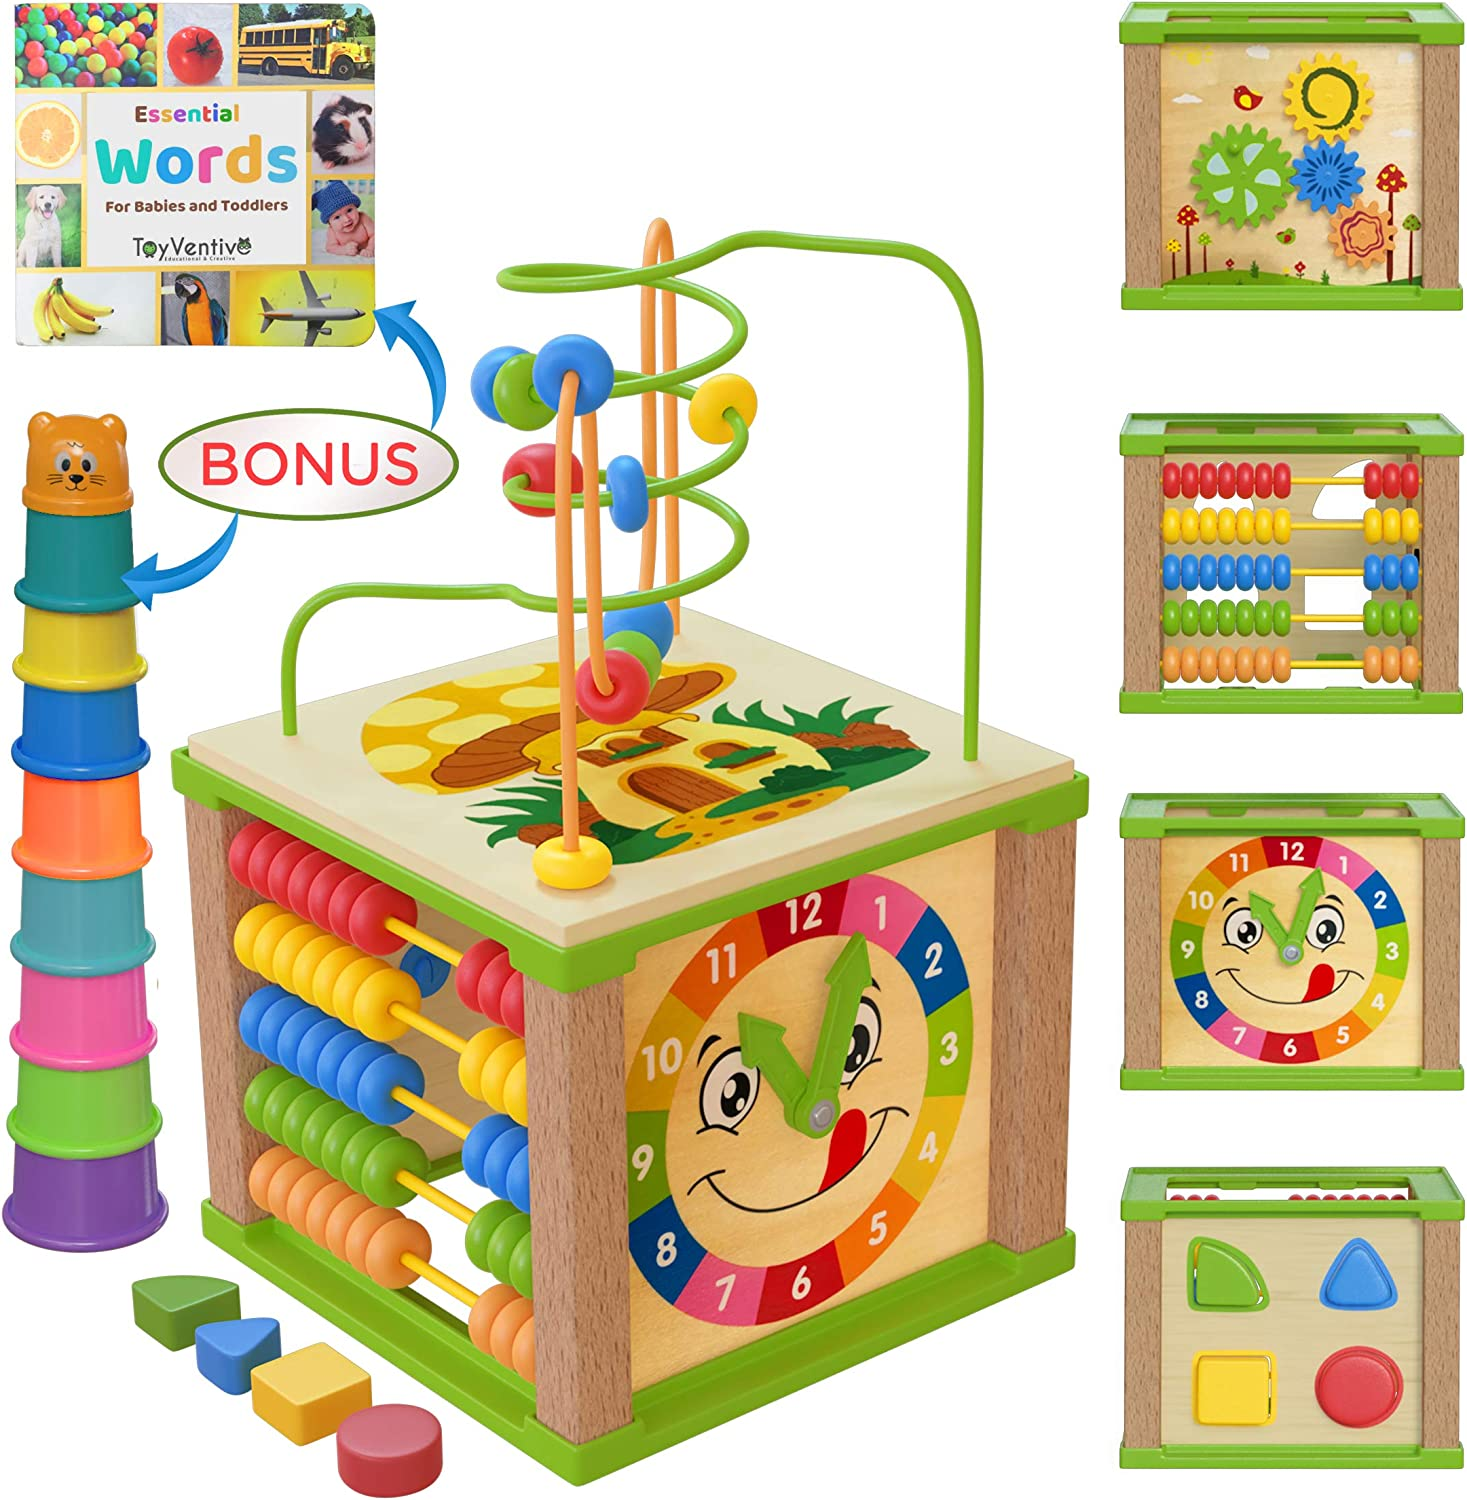 Amazon Com Toyventive Wooden Kids Baby Activity Cube Boys Gift Set One 1 2 Year Old Boy Gifts Toys Developmental Toddler Educational Learning Boy Toys 12 18 Months Bead Maze